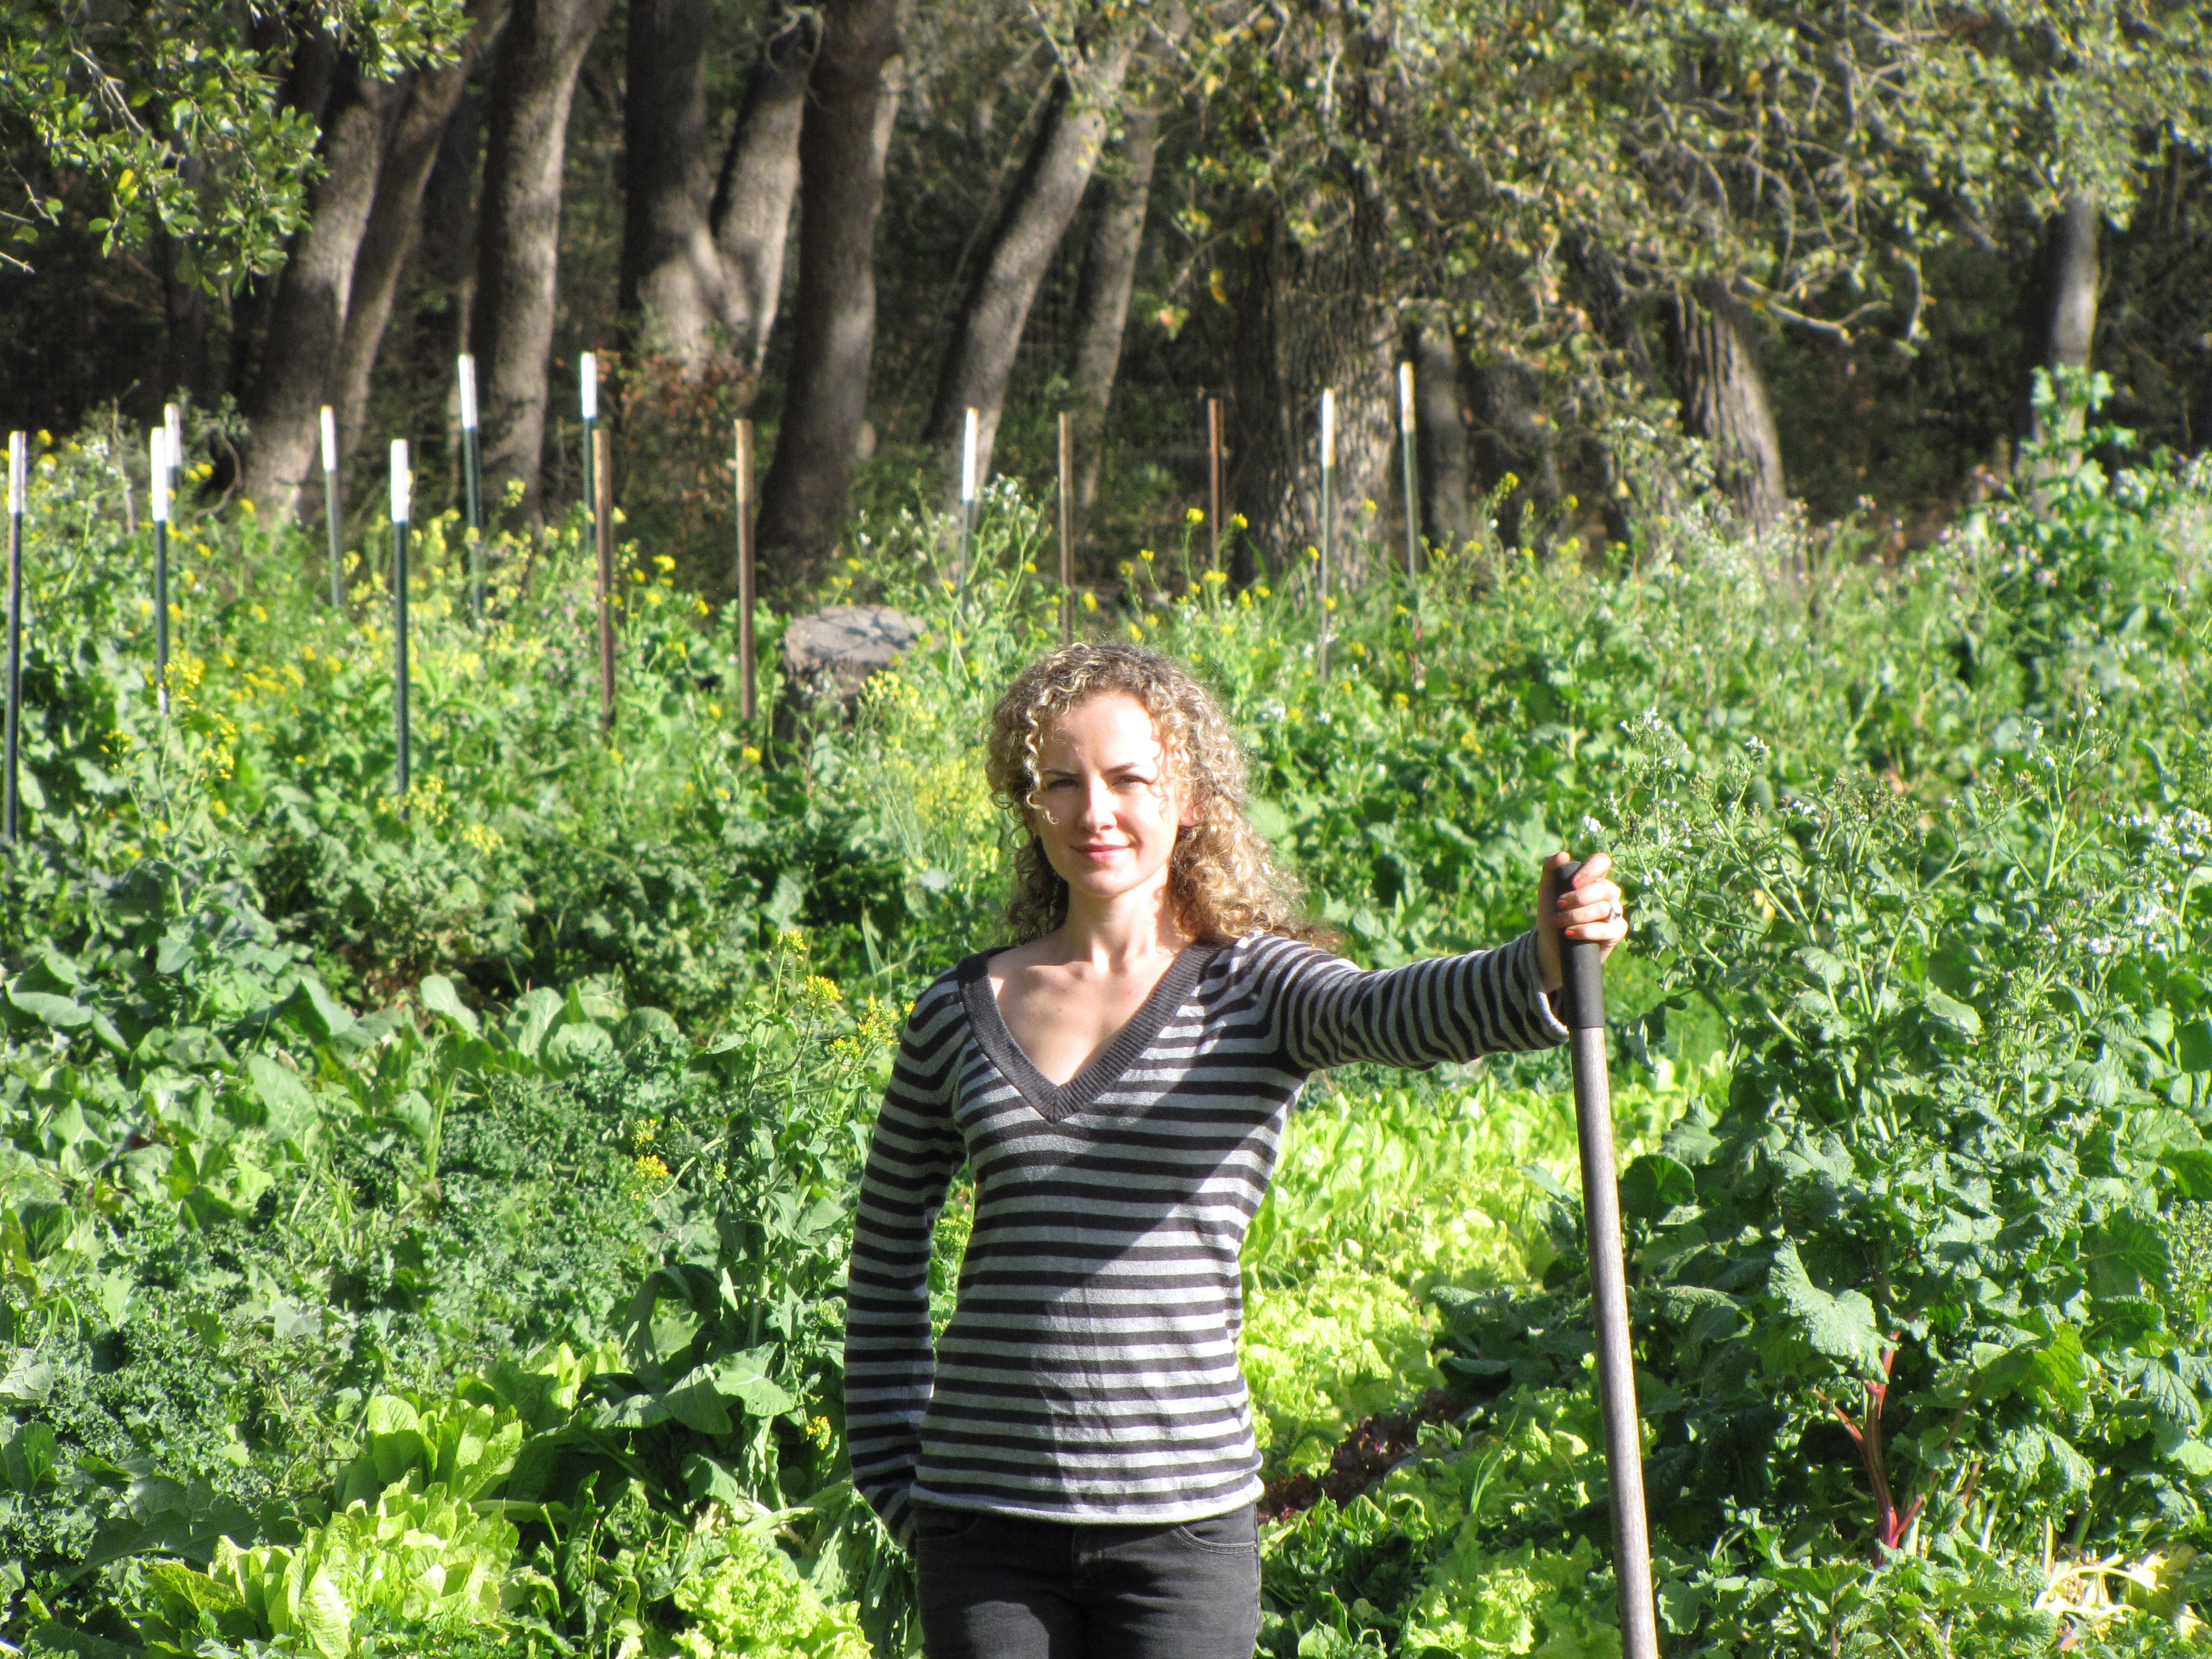 Chemical free pest control four string farm for Gardening classes near me